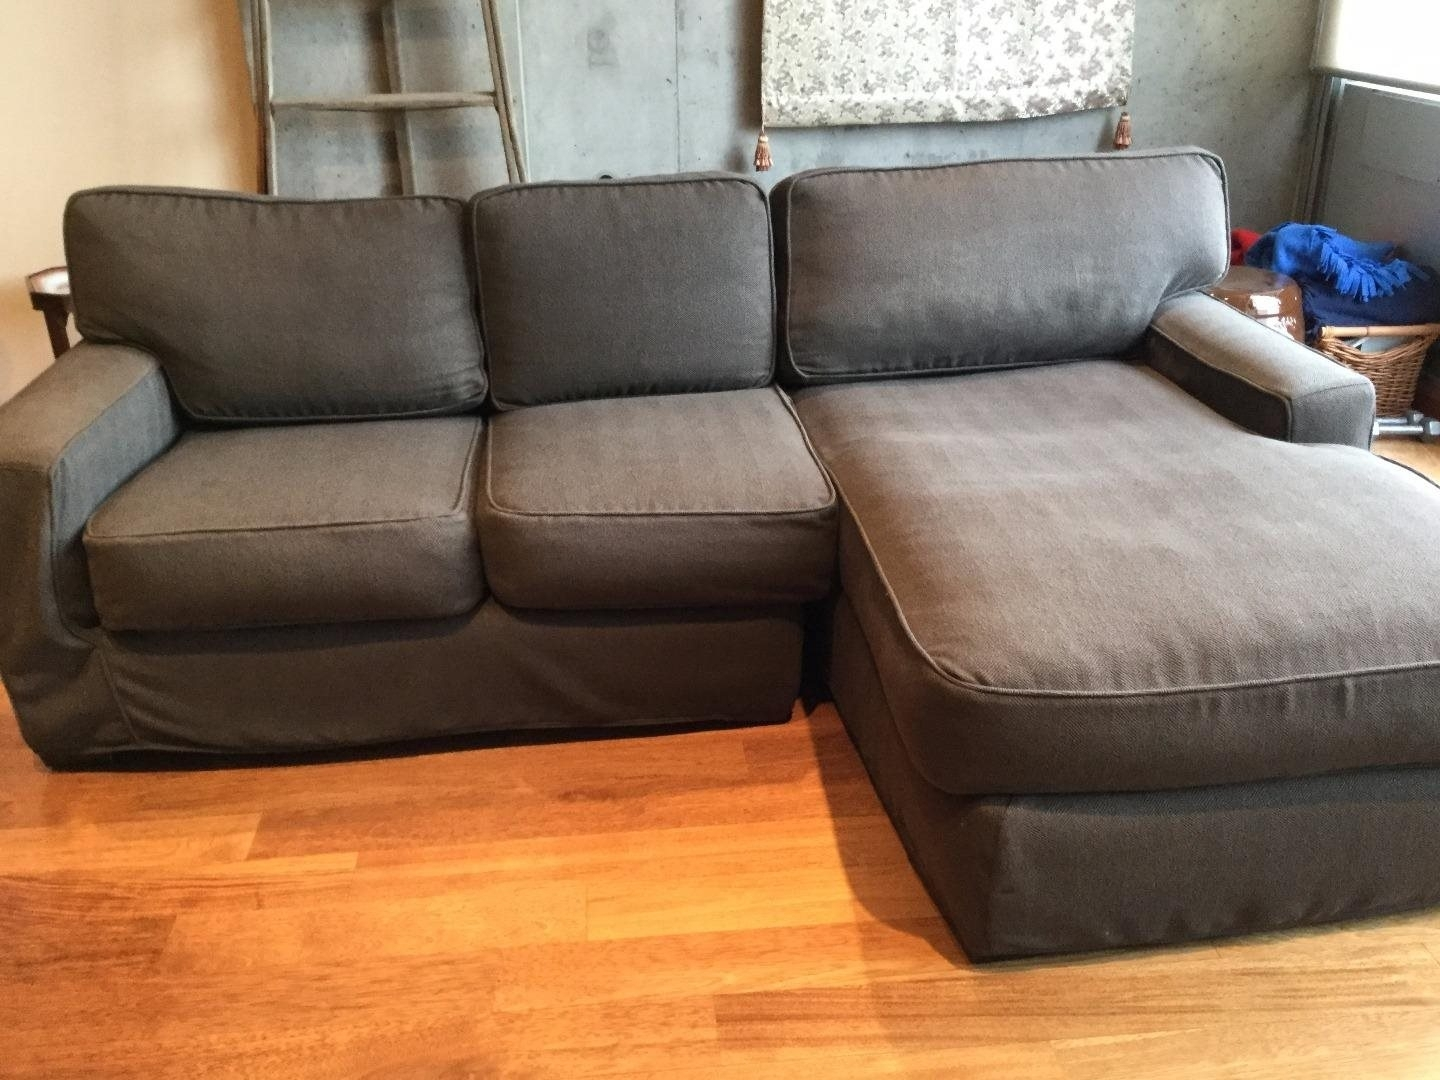 Quatrine Upholstered Sectional Sofa: For Sale In San Francisco, Ca within Quatrine Sectional Sofas